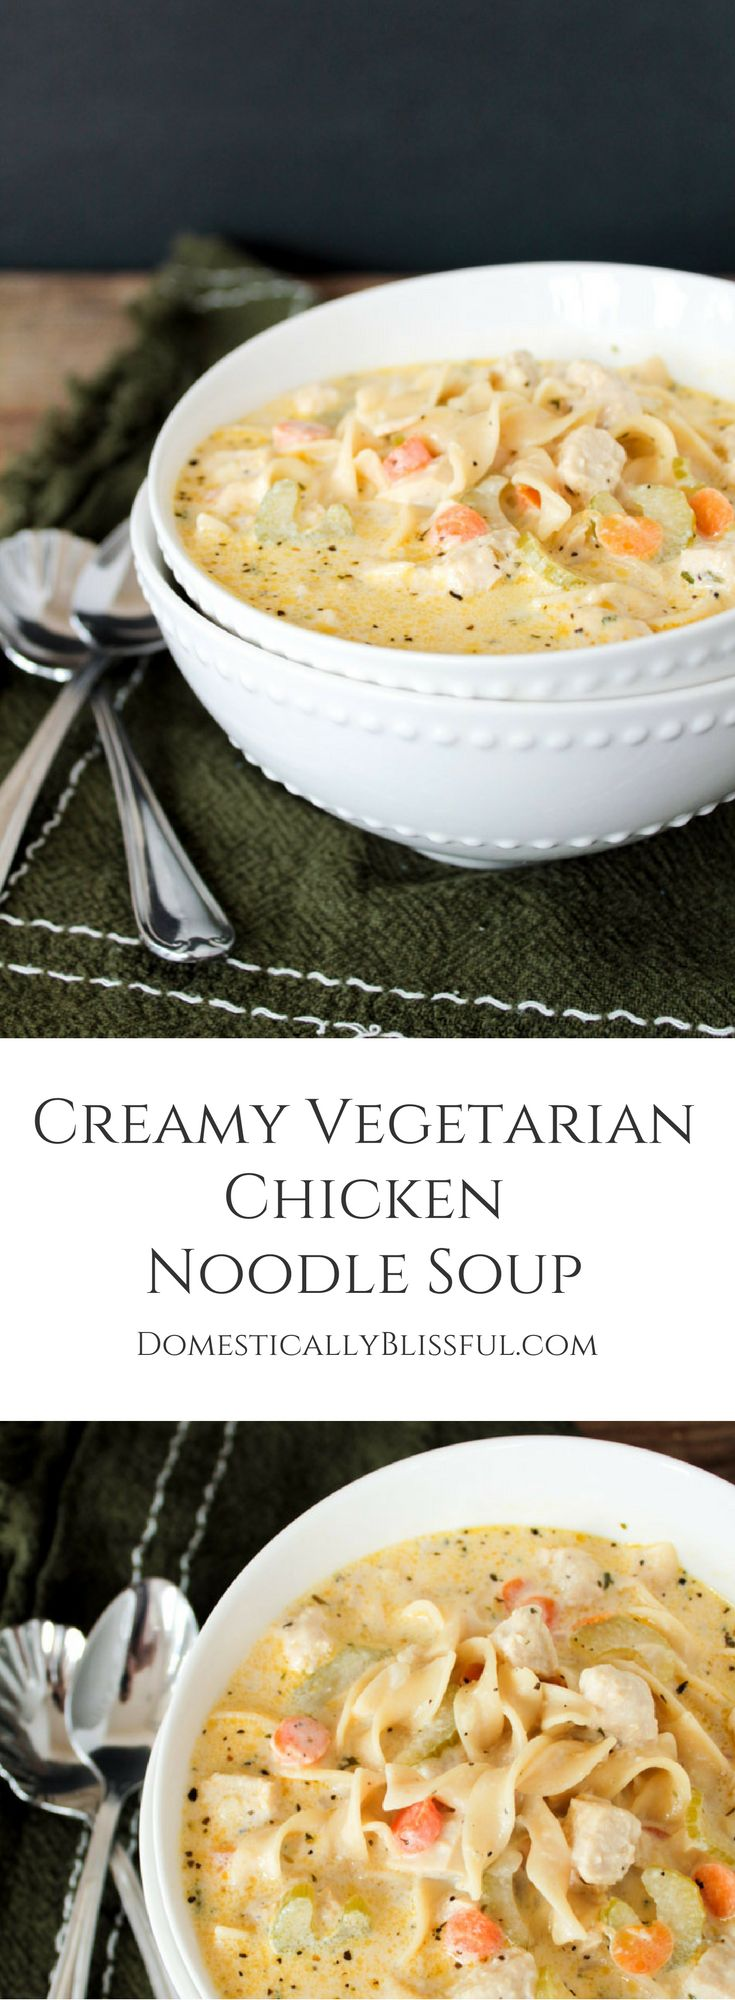 Creamy Vegetarian Chicken Noodle Soup is a yummy vegetarian twist on the classic recipe that will have everyone asking for more!